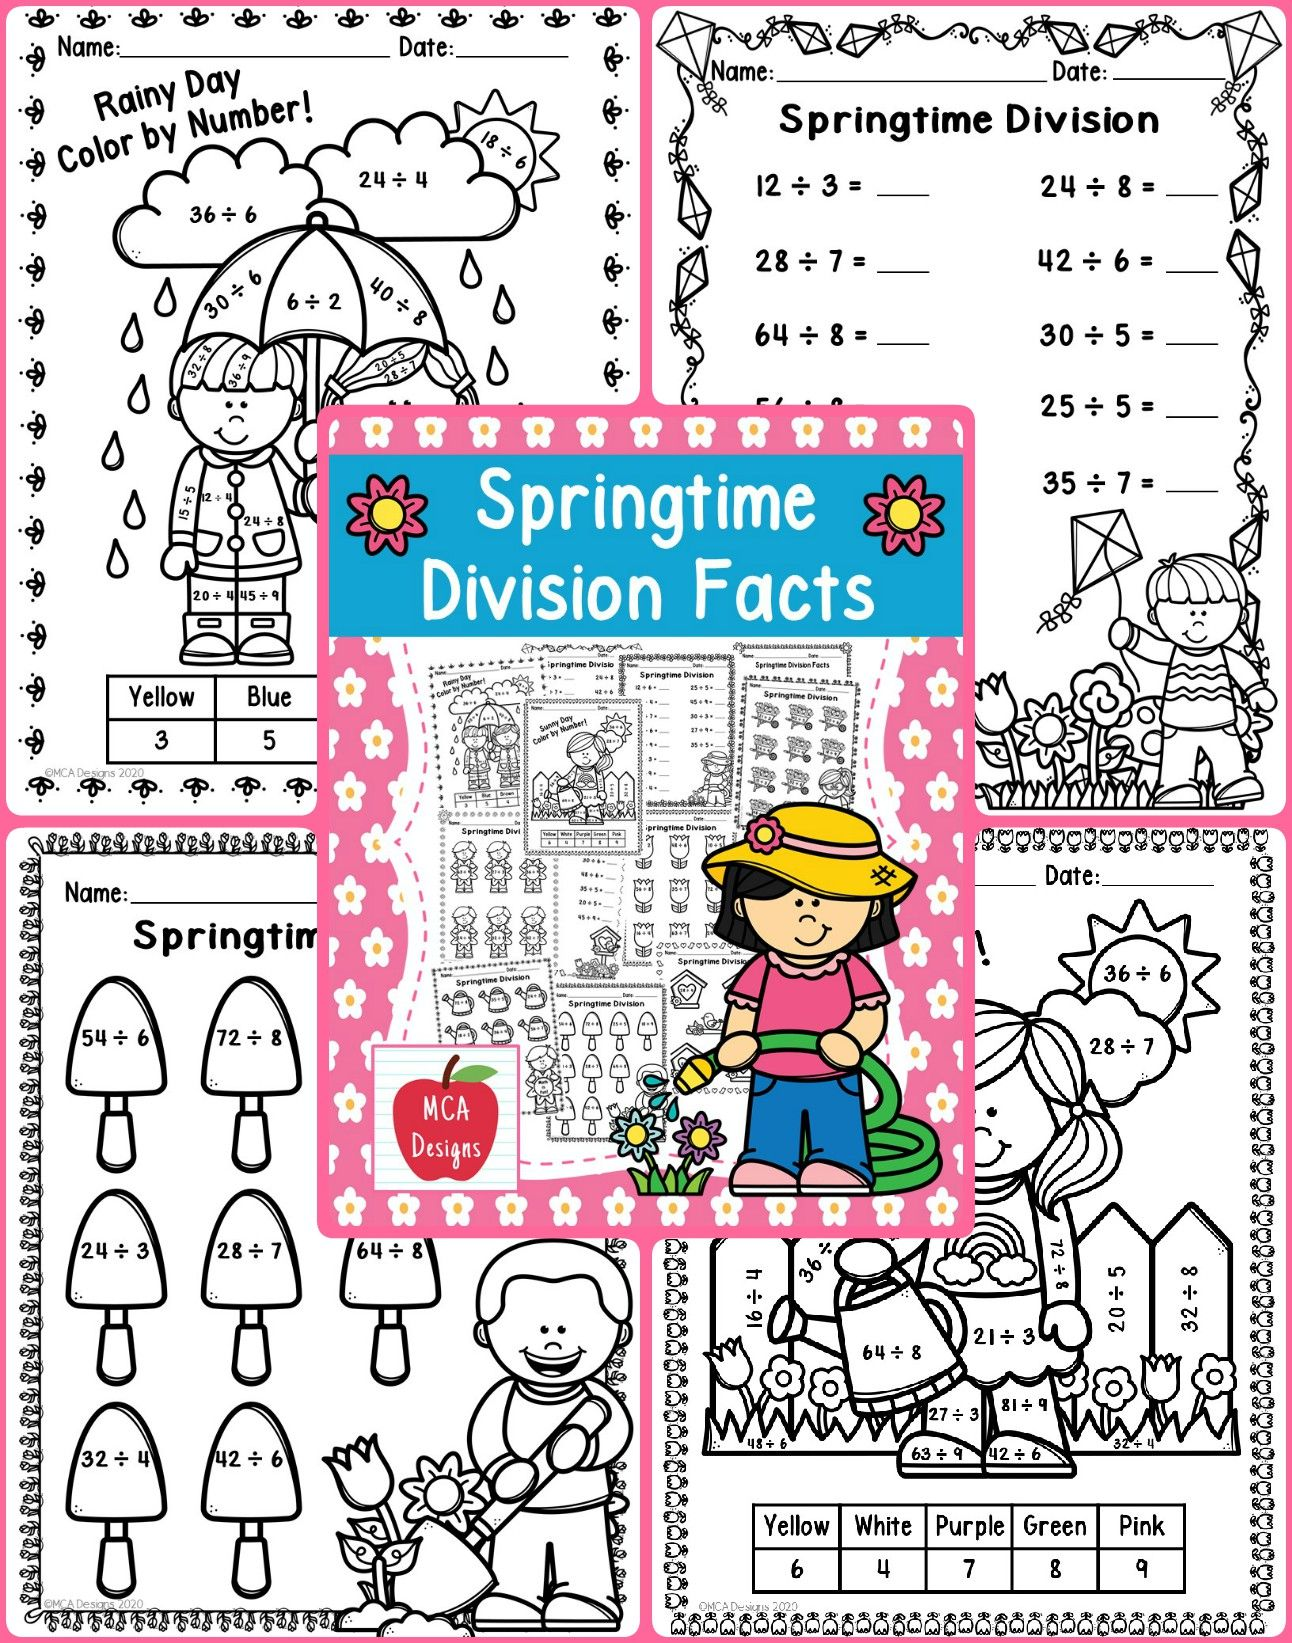 Springtime Division Facts In